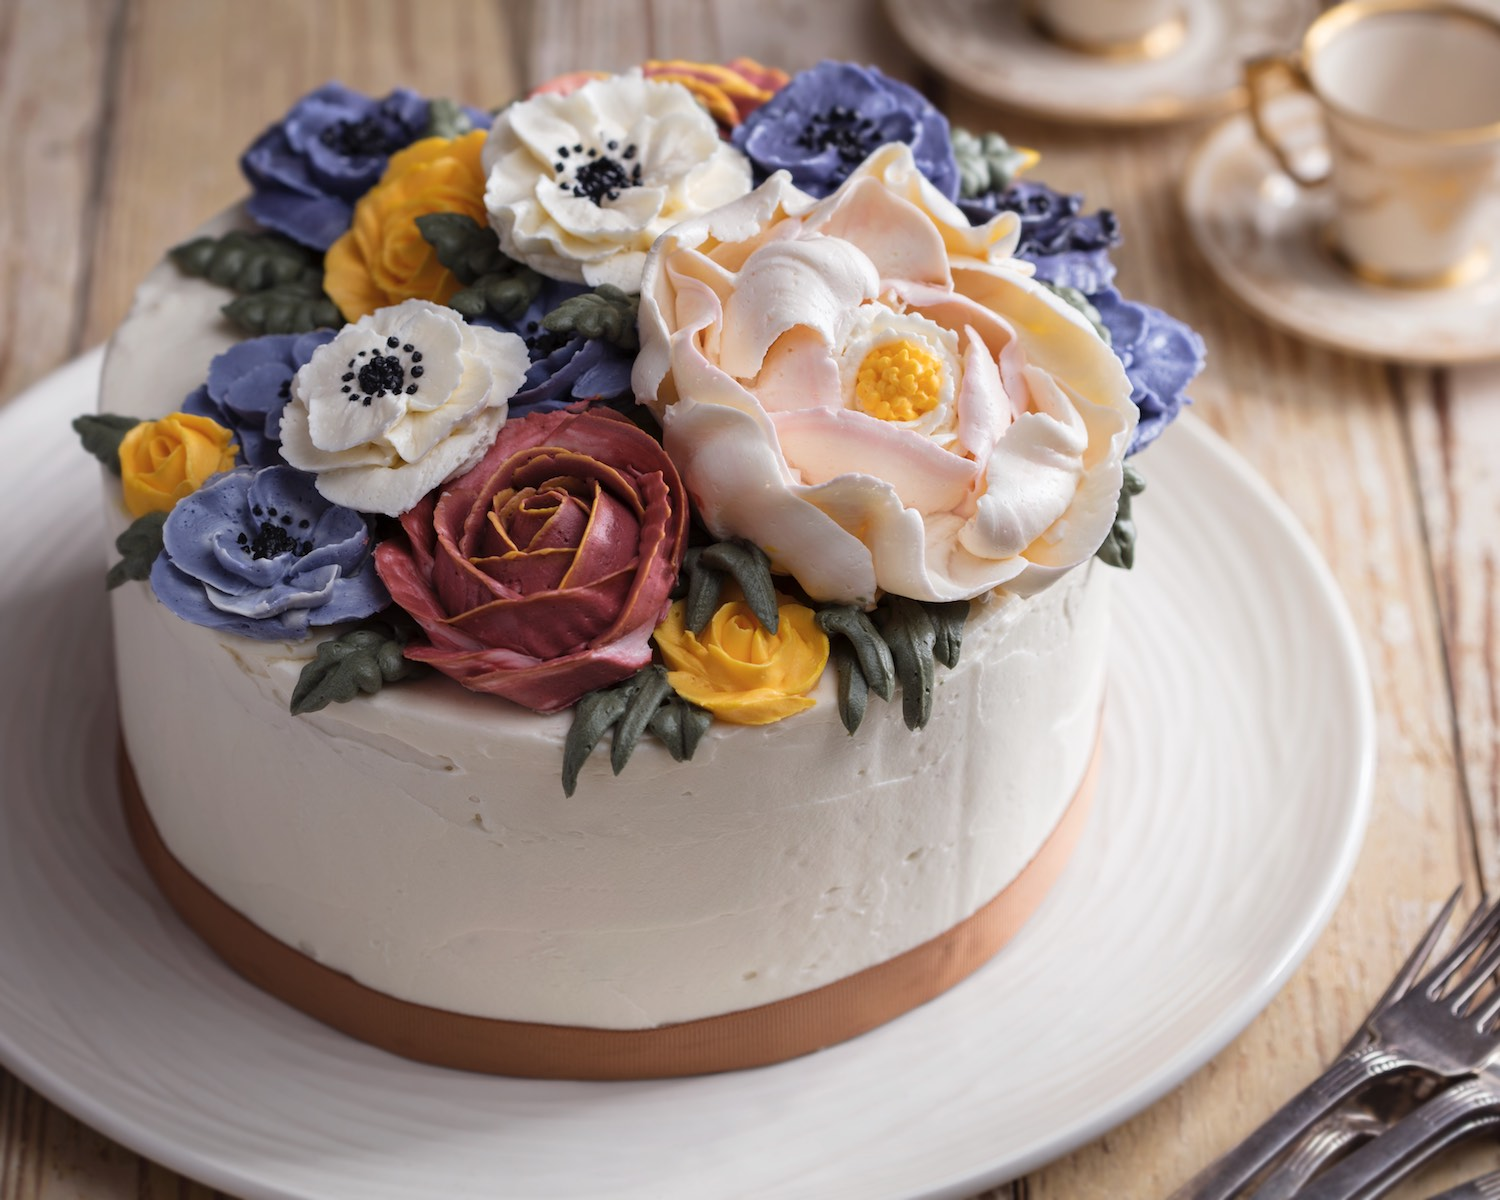 Of all of the images this might be my favorite, it really shows off the cake without too much else. I think the props do a nice job thematically.